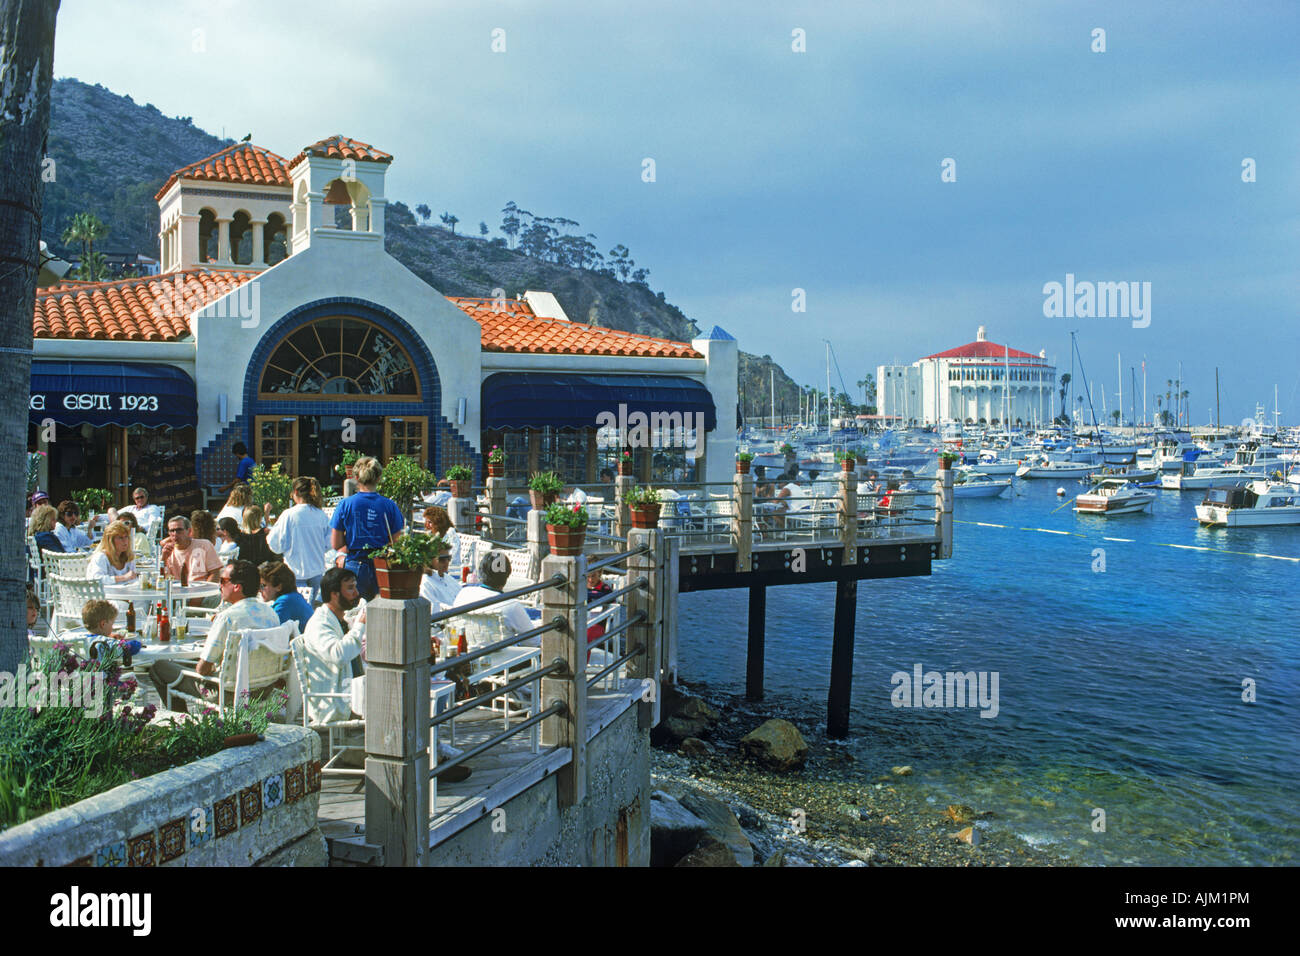 Tourists On Restaurant Balcony With Casino And Yachts At